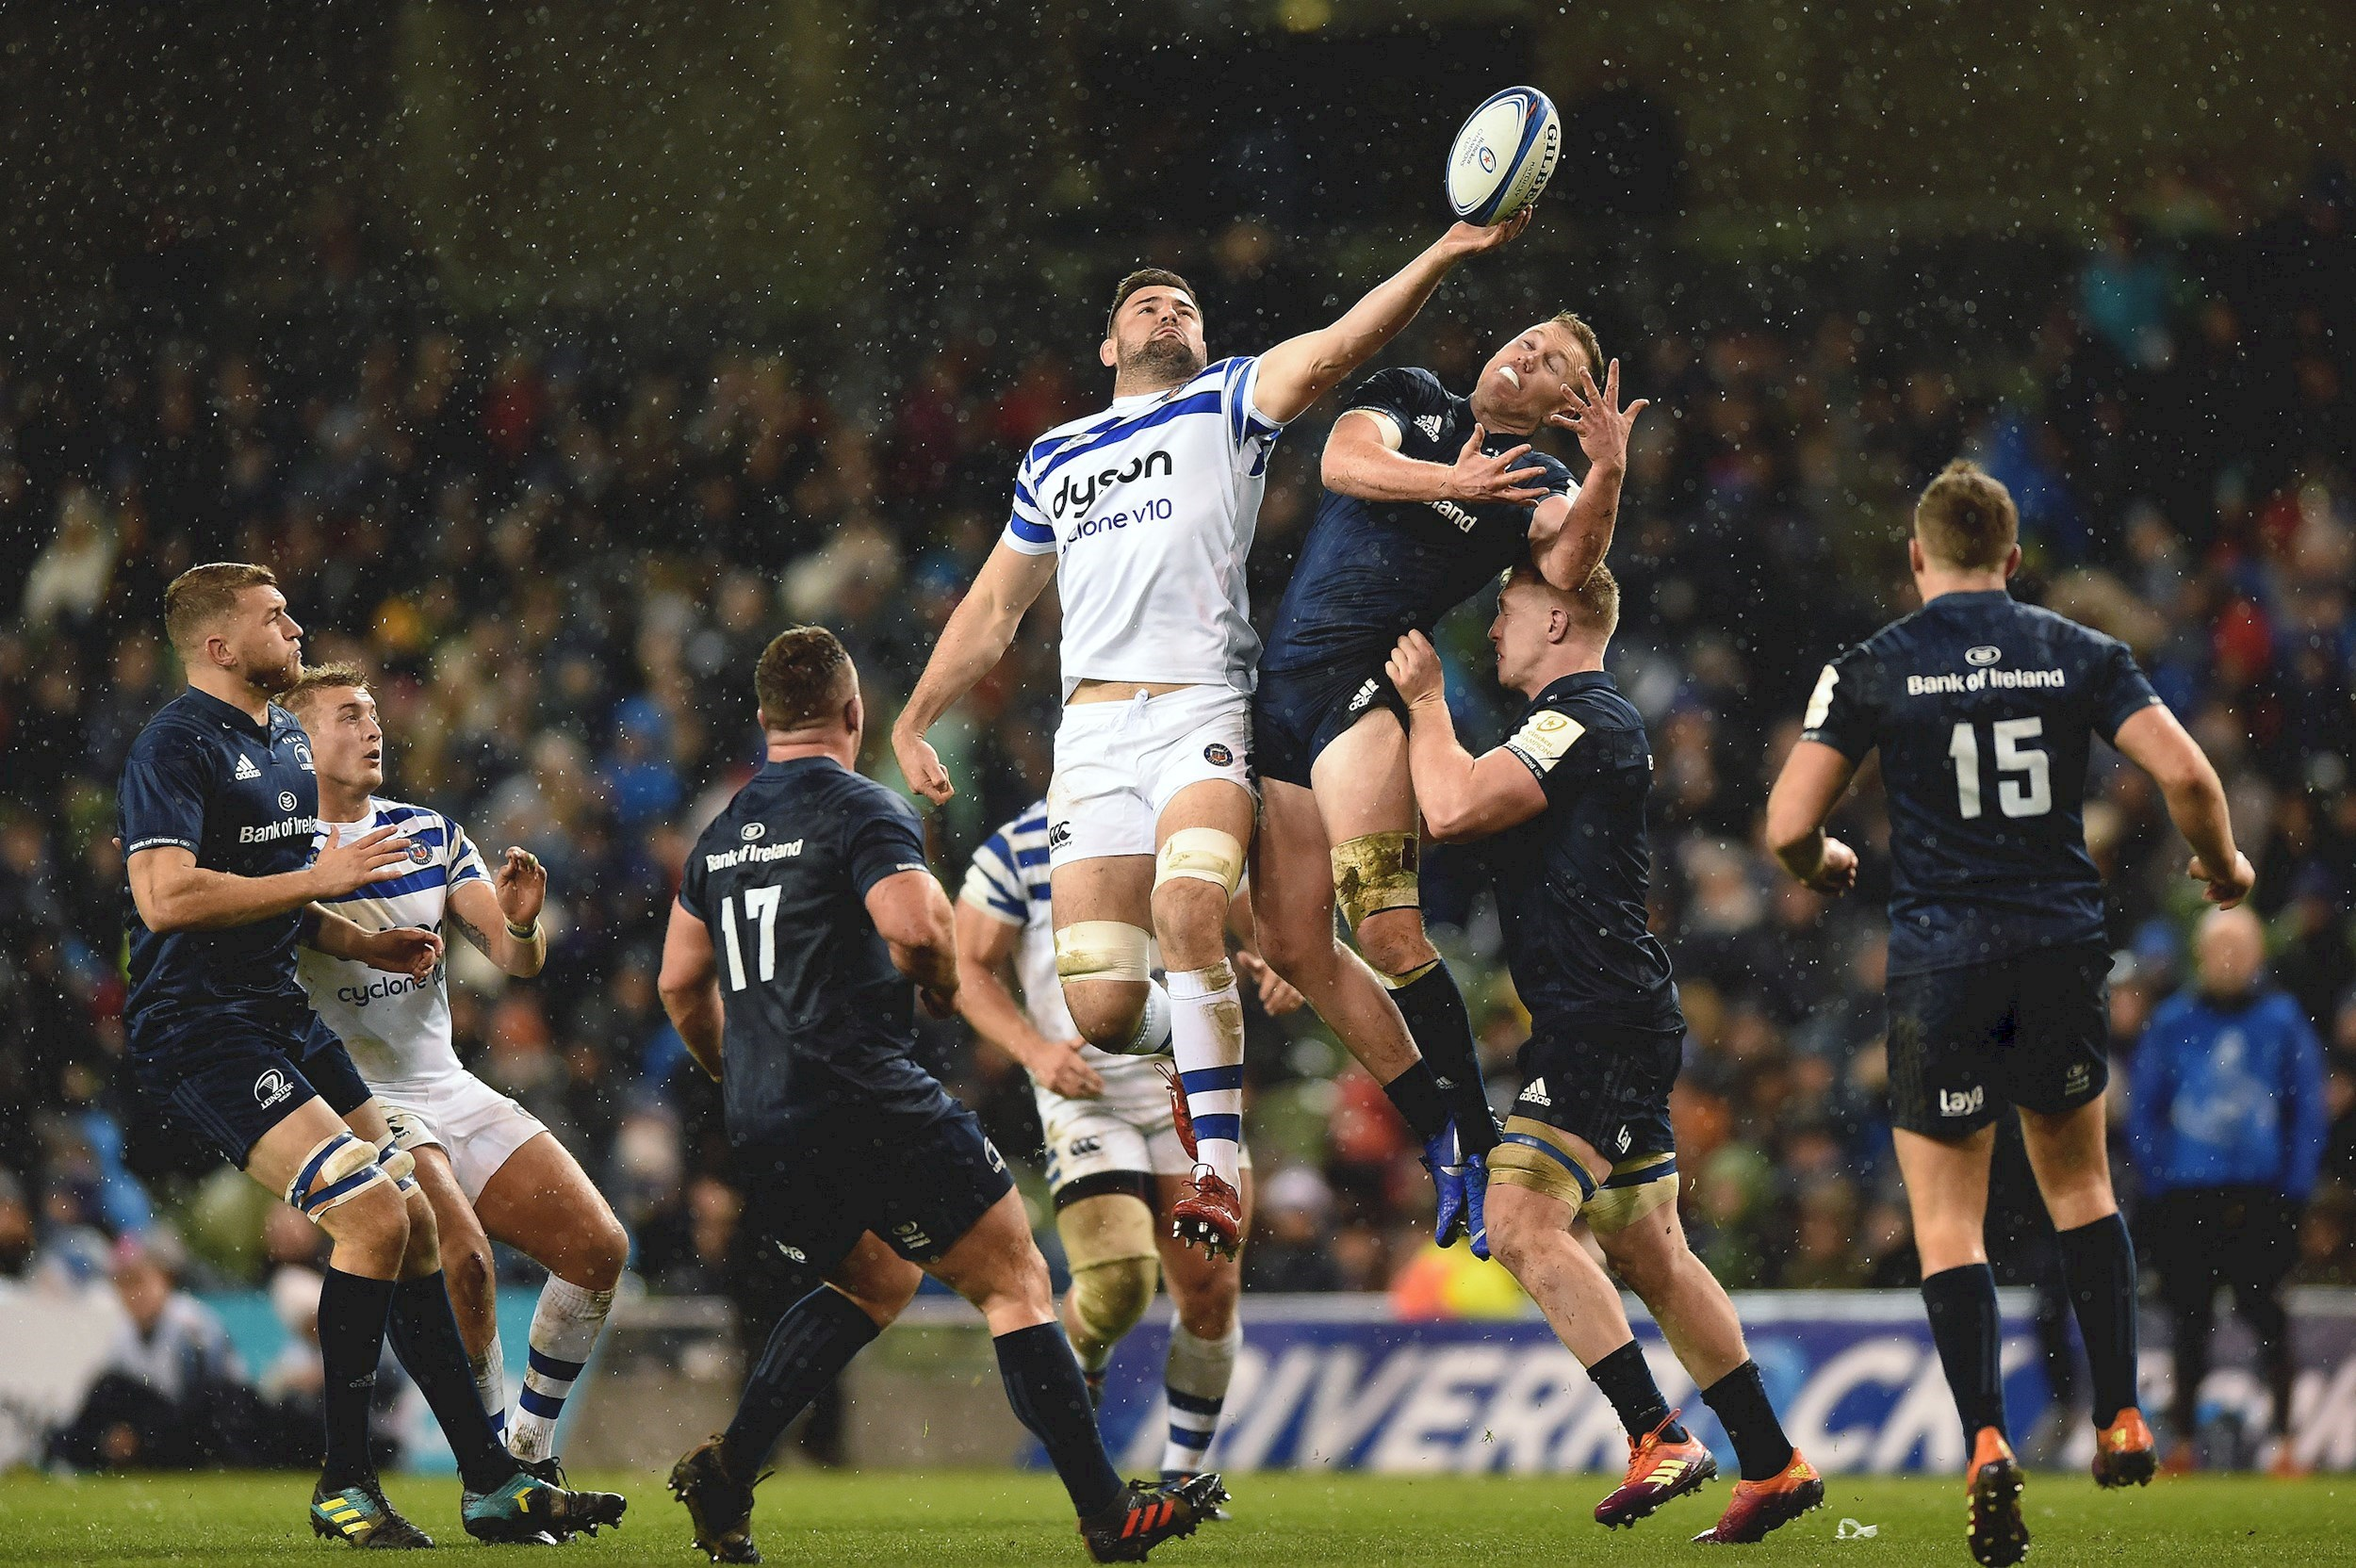 Leinster show clinical edge in victory against Bath Rugby